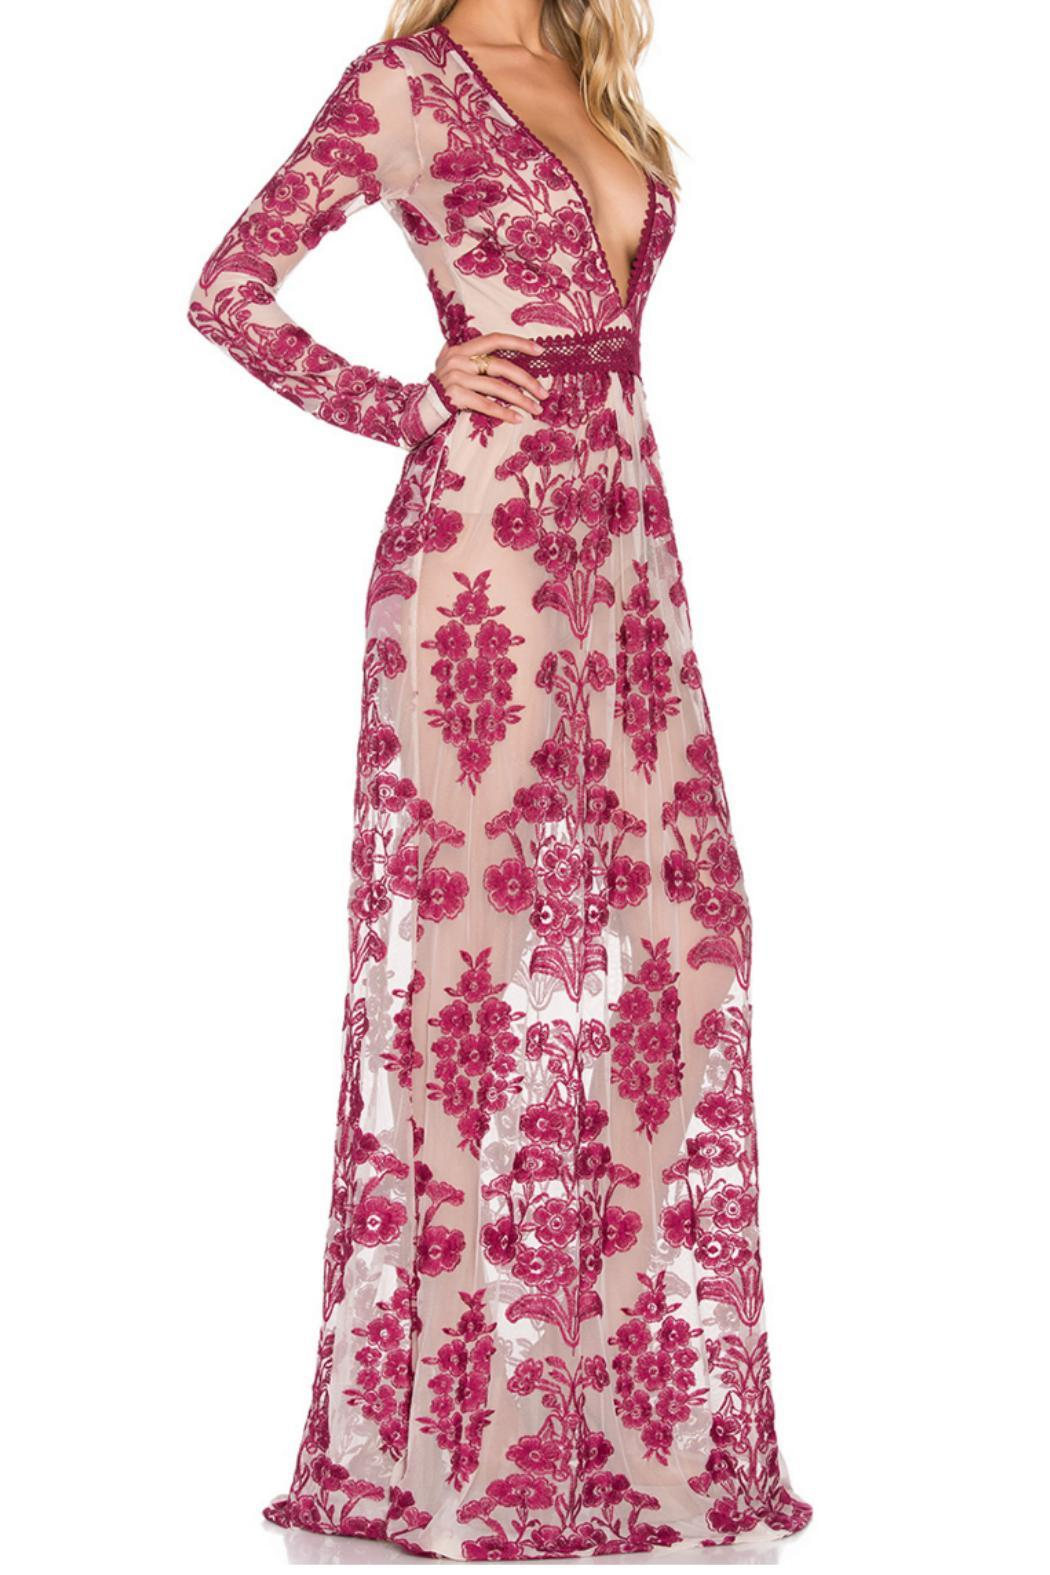 84f520cb7be FOR LOVE   LEMONS Temecula Maxi Dress from Canada by Blk Sheep ...